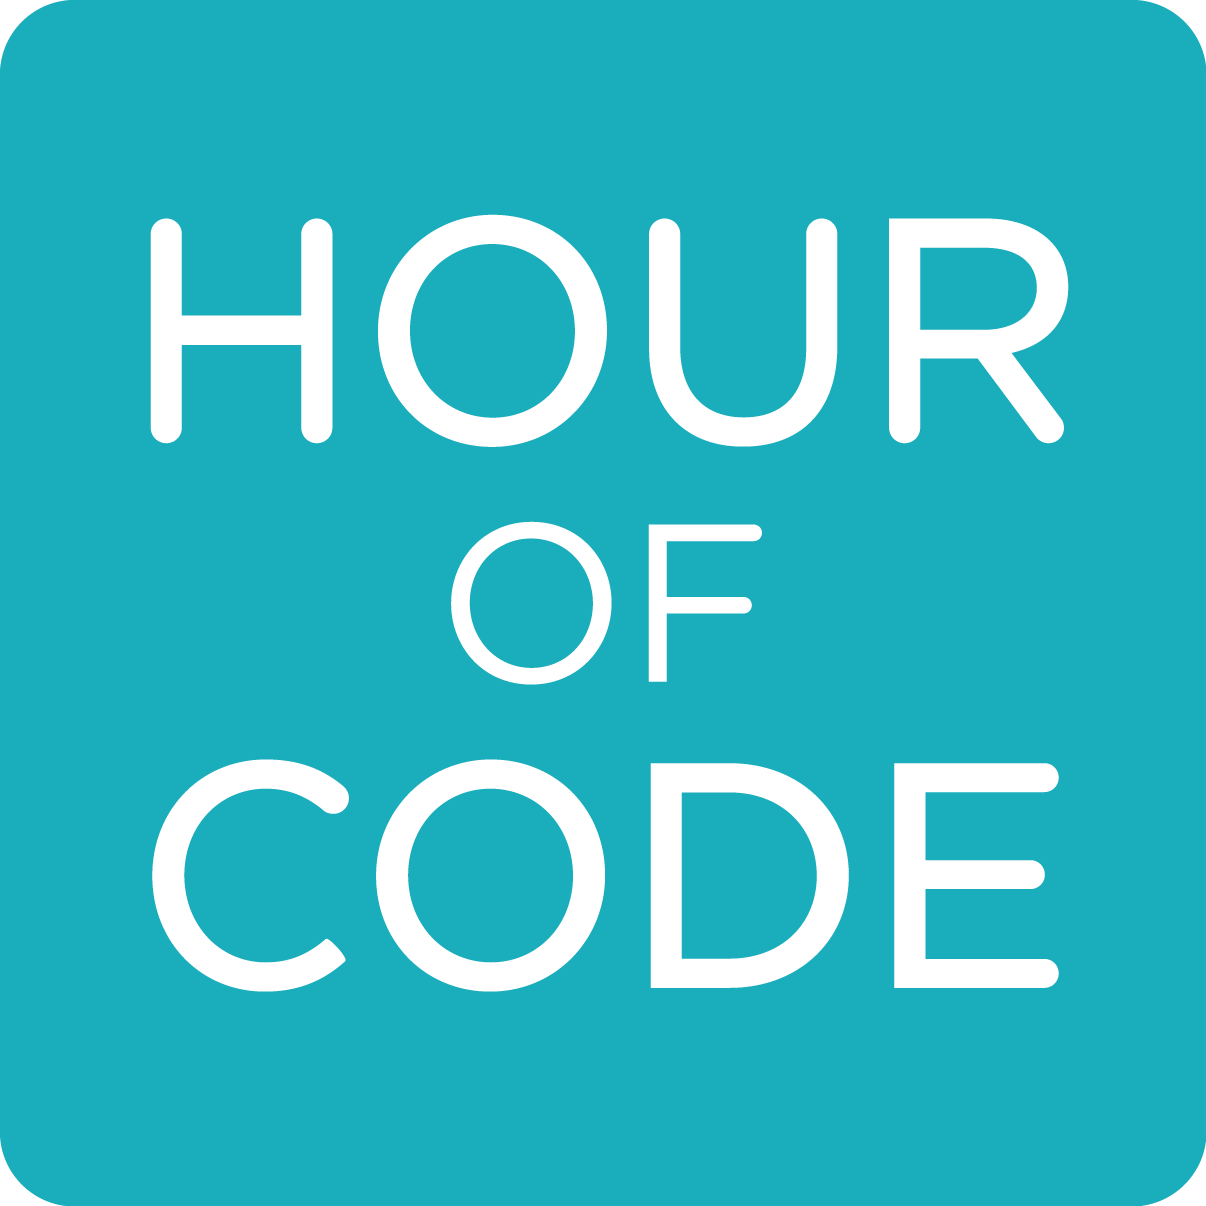 The 'Hour of Code' logo